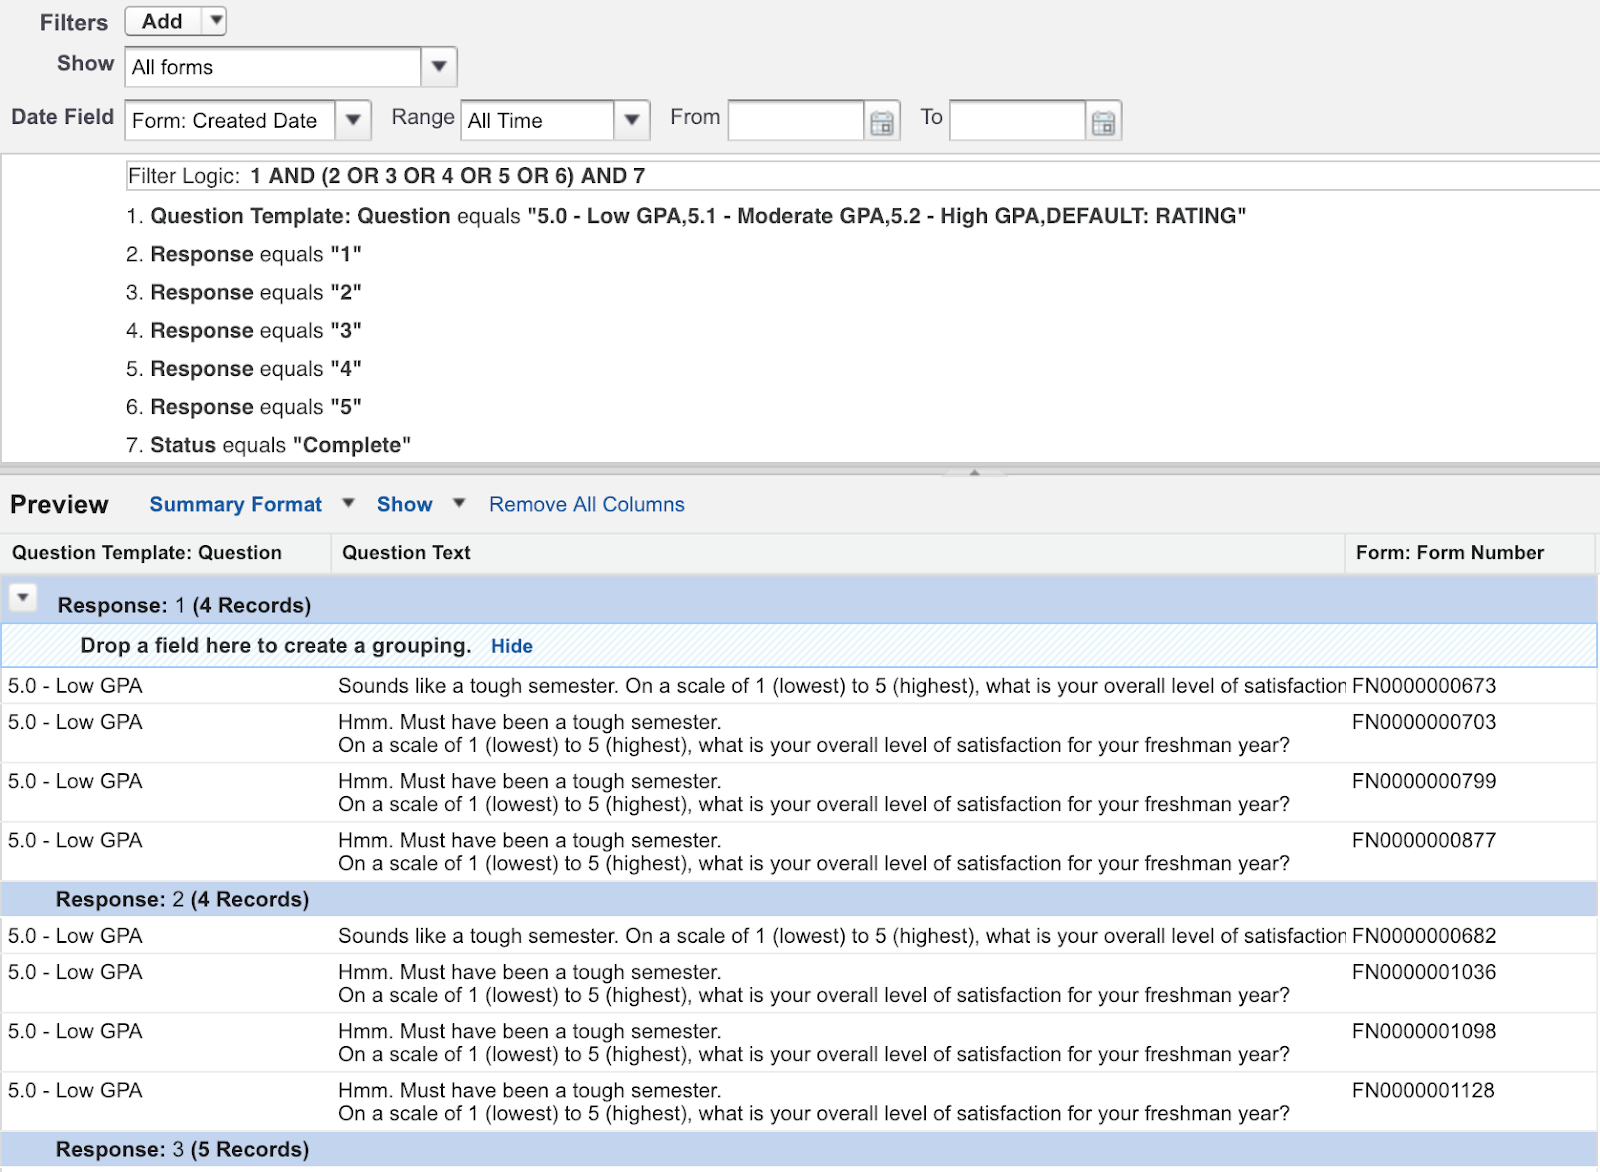 Building the Report for Level of Satisfaction with the Classic Report Builder view